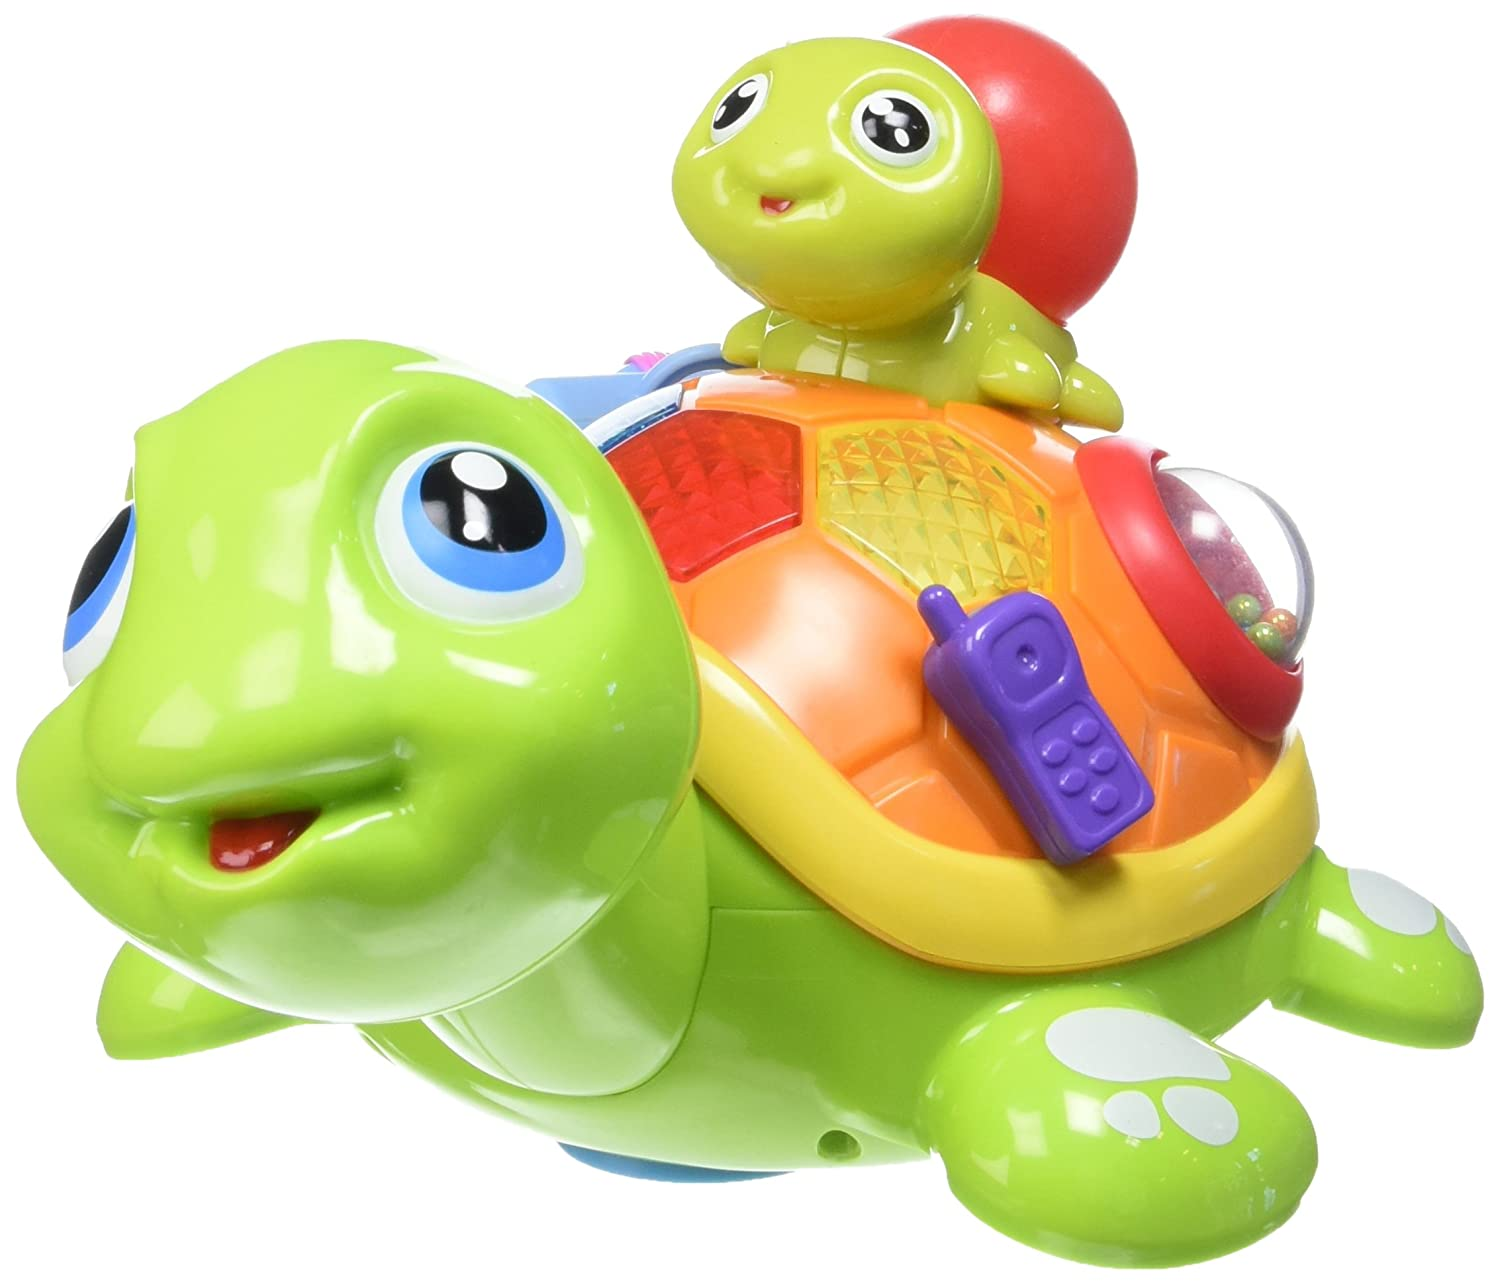 Venta barata Best Choice Products Educational Family Talking Turtle Toy Game Game Game Laugh  Learn Crawling Action Developments Toys With Musical Songs by Best Choice Products  tienda hace compras y ventas